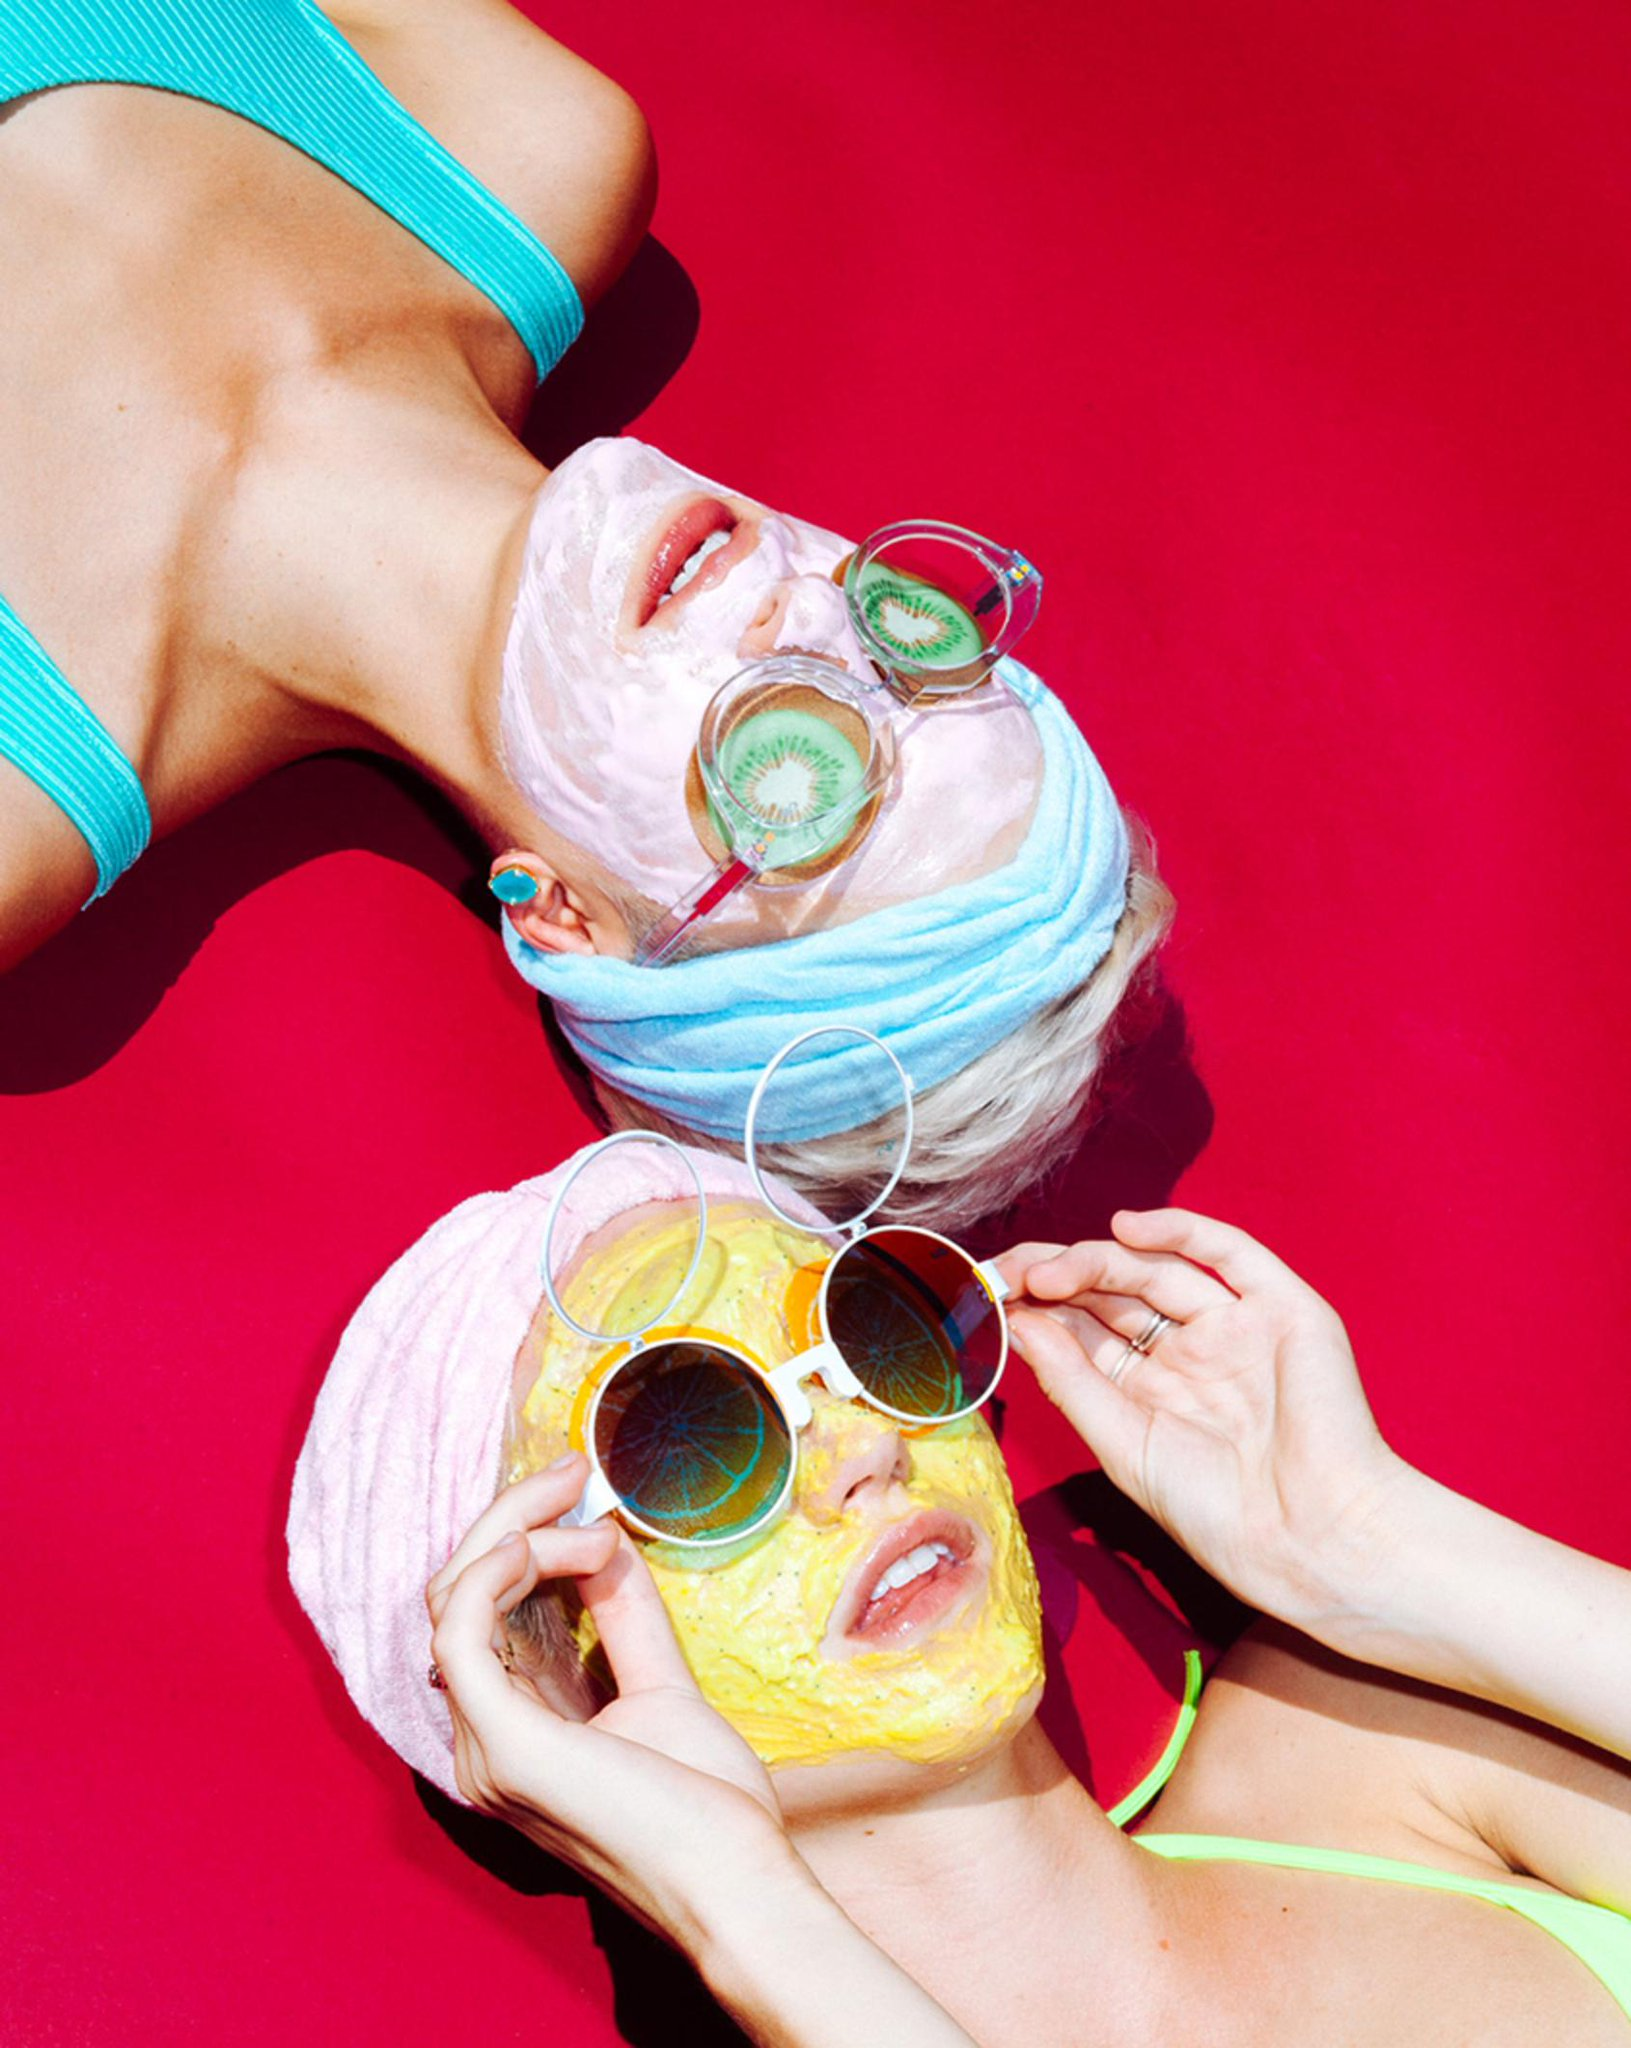 Our favorite experimental electro duo @YACHT designed a sunglasses collection: http://t.co/b7PQmaicCL http://t.co/5KUuJDskpH